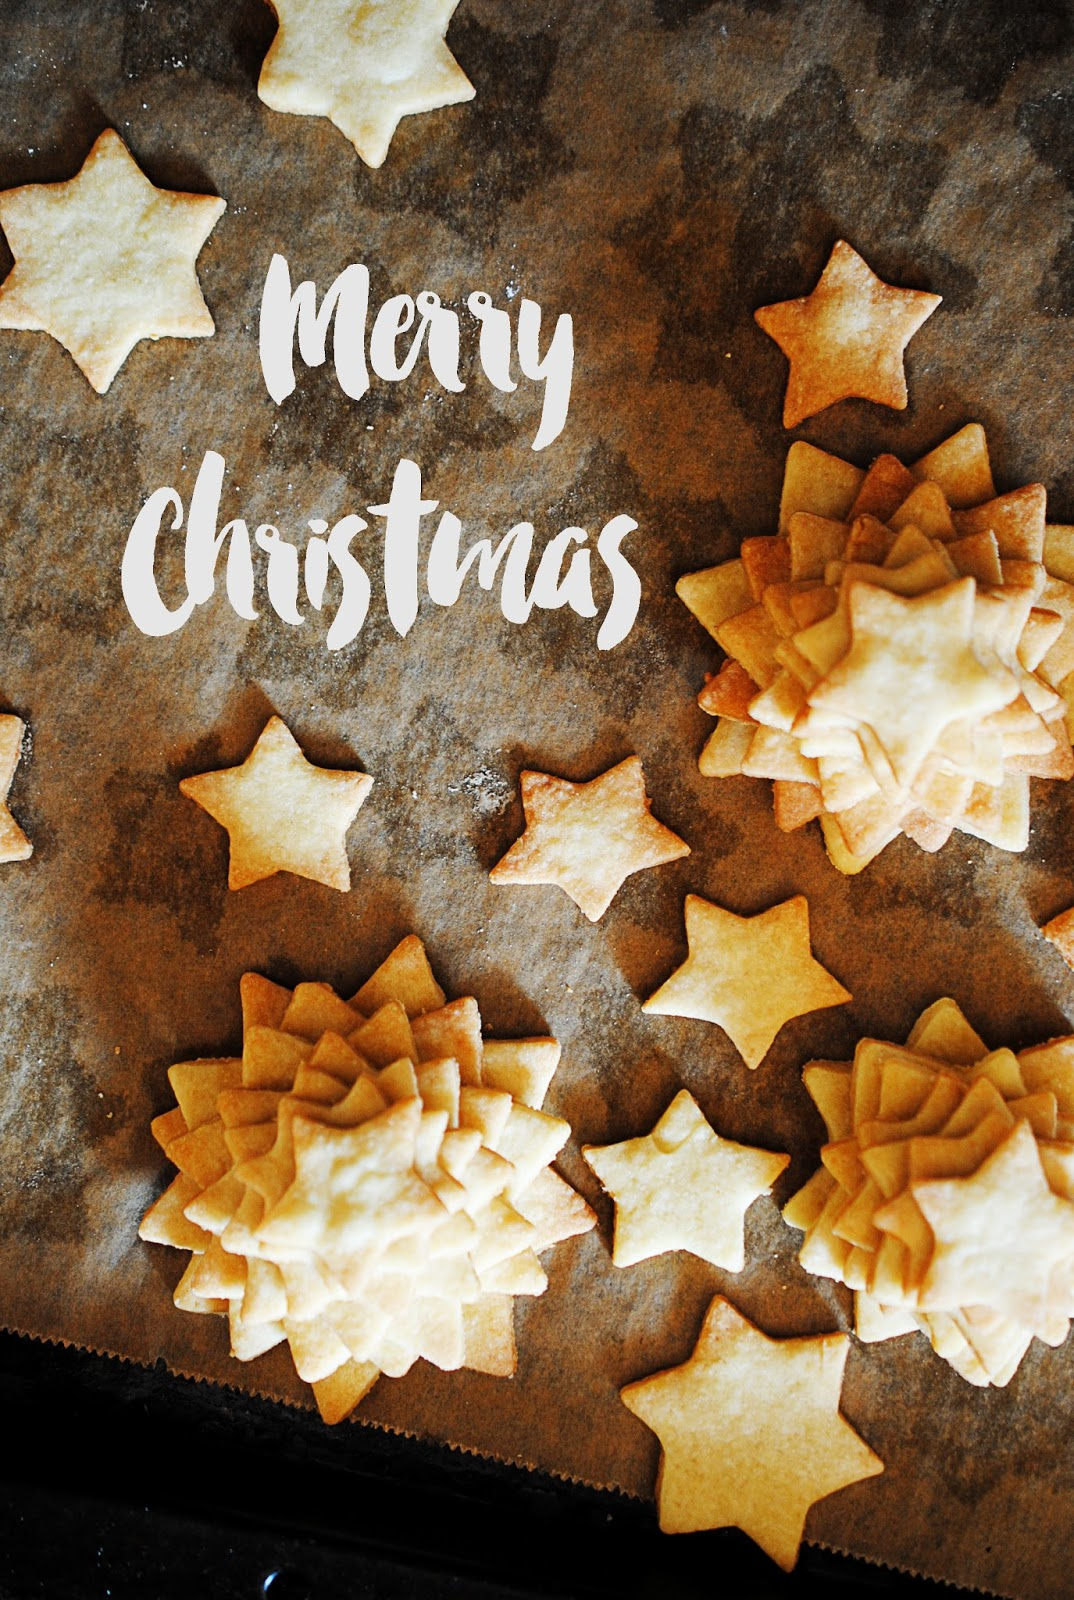 Merry Christmas | Cookies | Motte's Blog